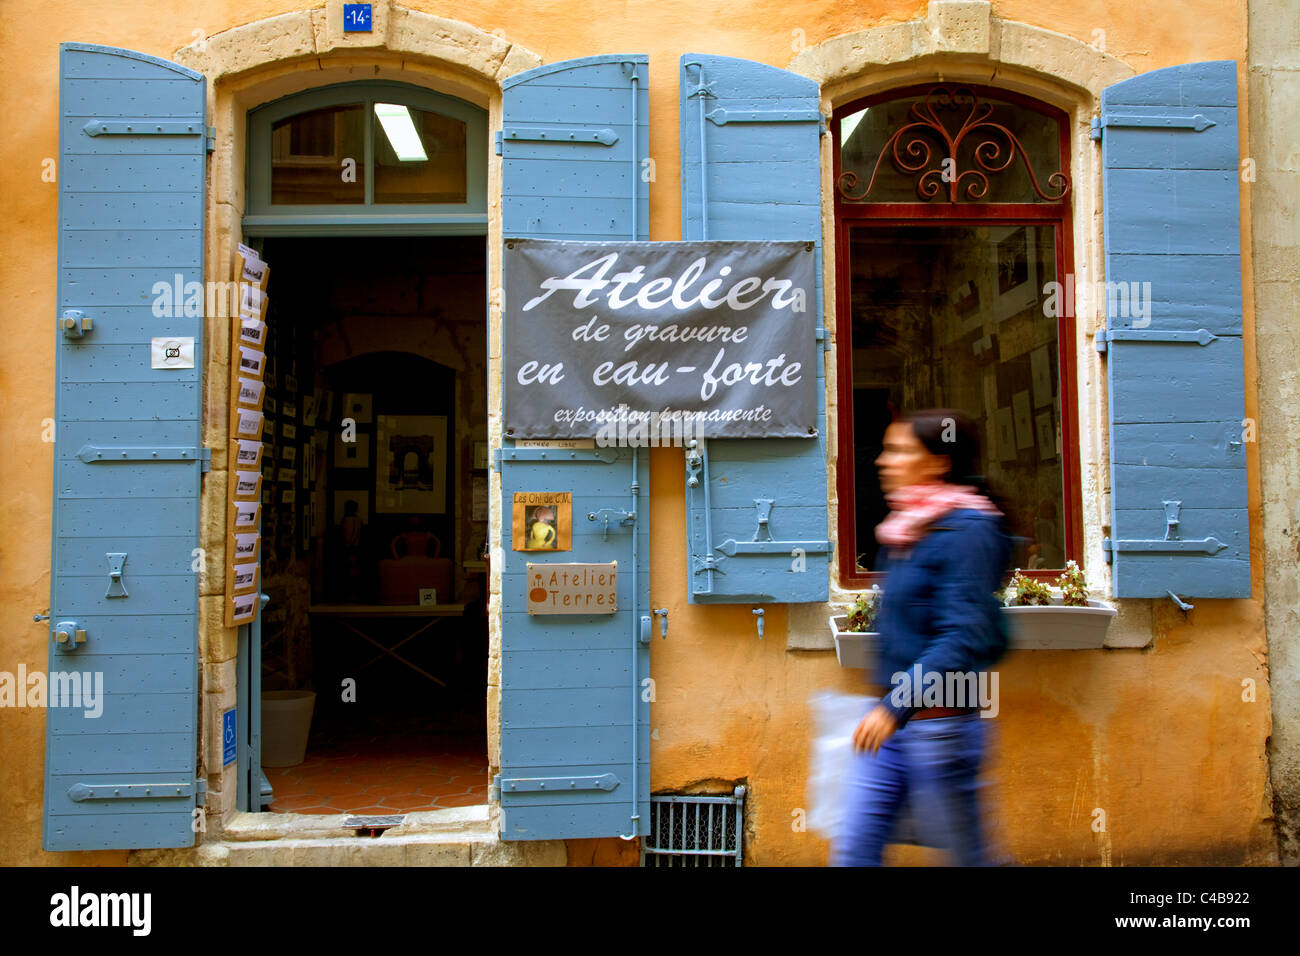 Arles; Bouches du Rhone, France; A young woman walking in front of an Atlelier's (artist's studio). MR. Stock Photo